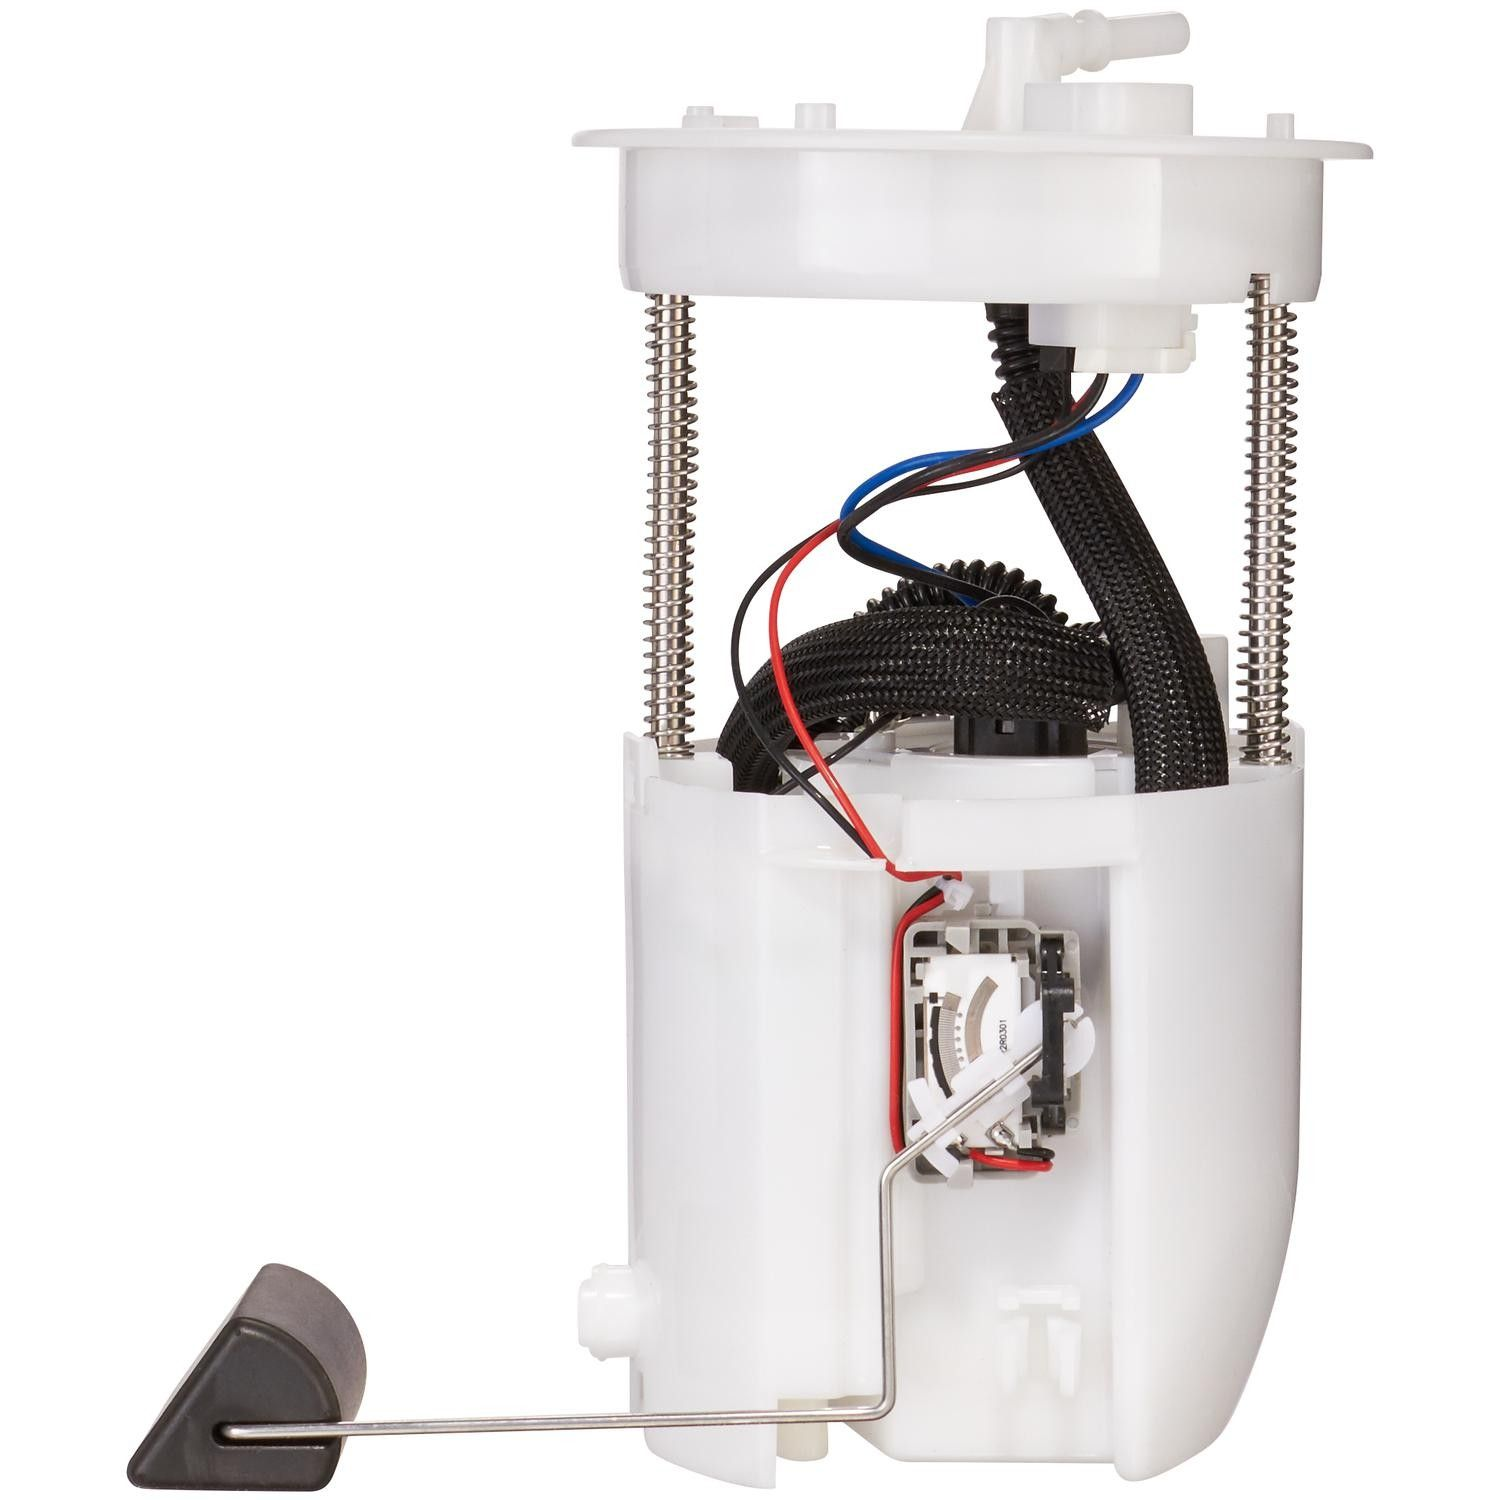 Mazda 3 Fuel Pump Module Assembly Replacement Airtex Autobest Wiring Housing 2012 4 Cyl 20l Spectra Sp4118m With Skyactiv Engine Internal Strainer Included